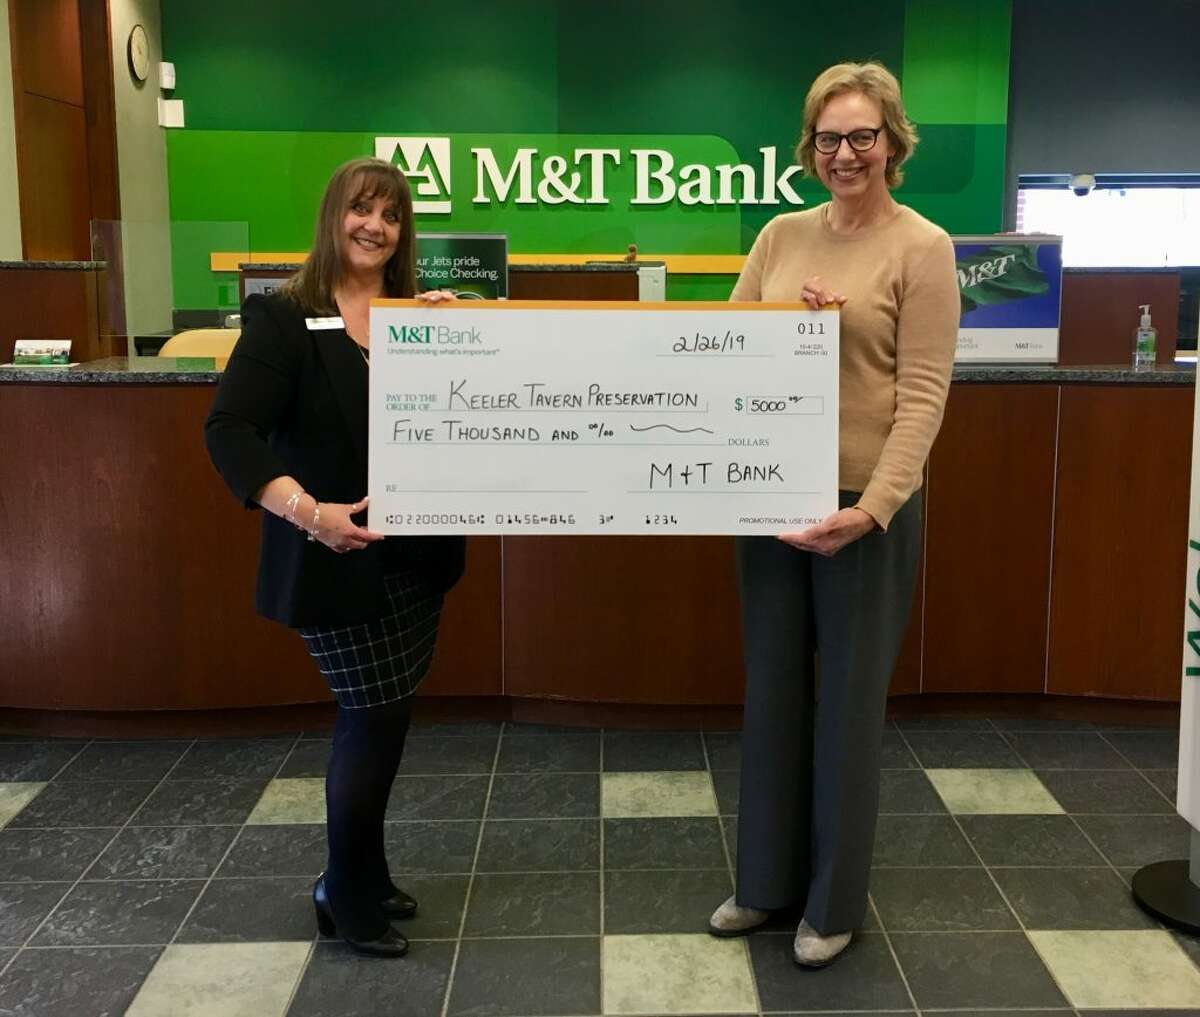 Colleen Caranfa, manager at M&T Bank's Ridgefield branch, and Hildi Grob, Keeler Tavern Museum and History Center's executive director, hold a $5,000 facsimile check representing the grant that the Museum recently received from M and T Bank for visitor research.